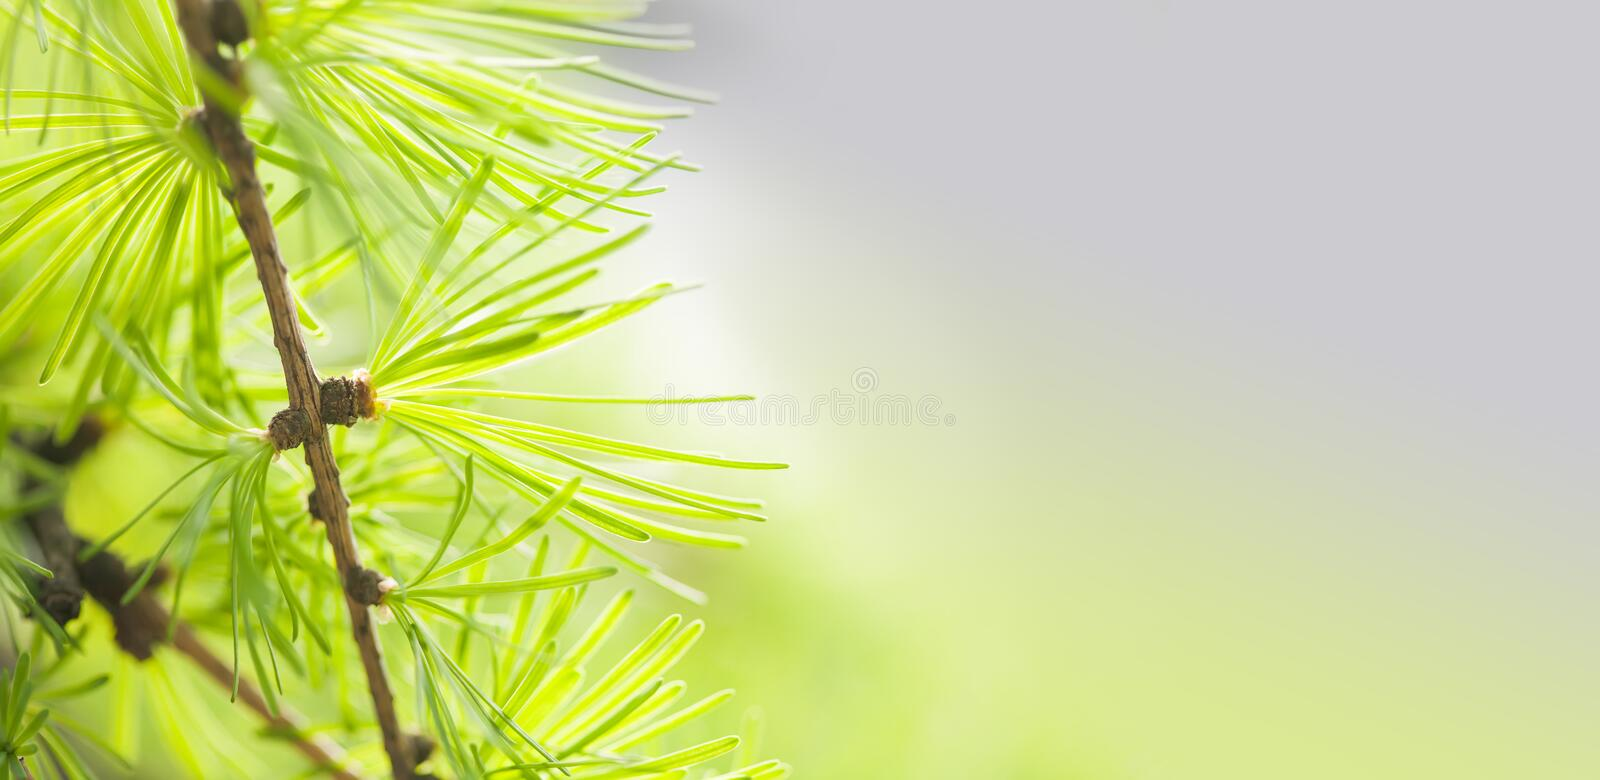 Pine tree branch with greenery needles close-up. Forest tree macro view. soft focus. Spring time season concept. Copy. Space stock image